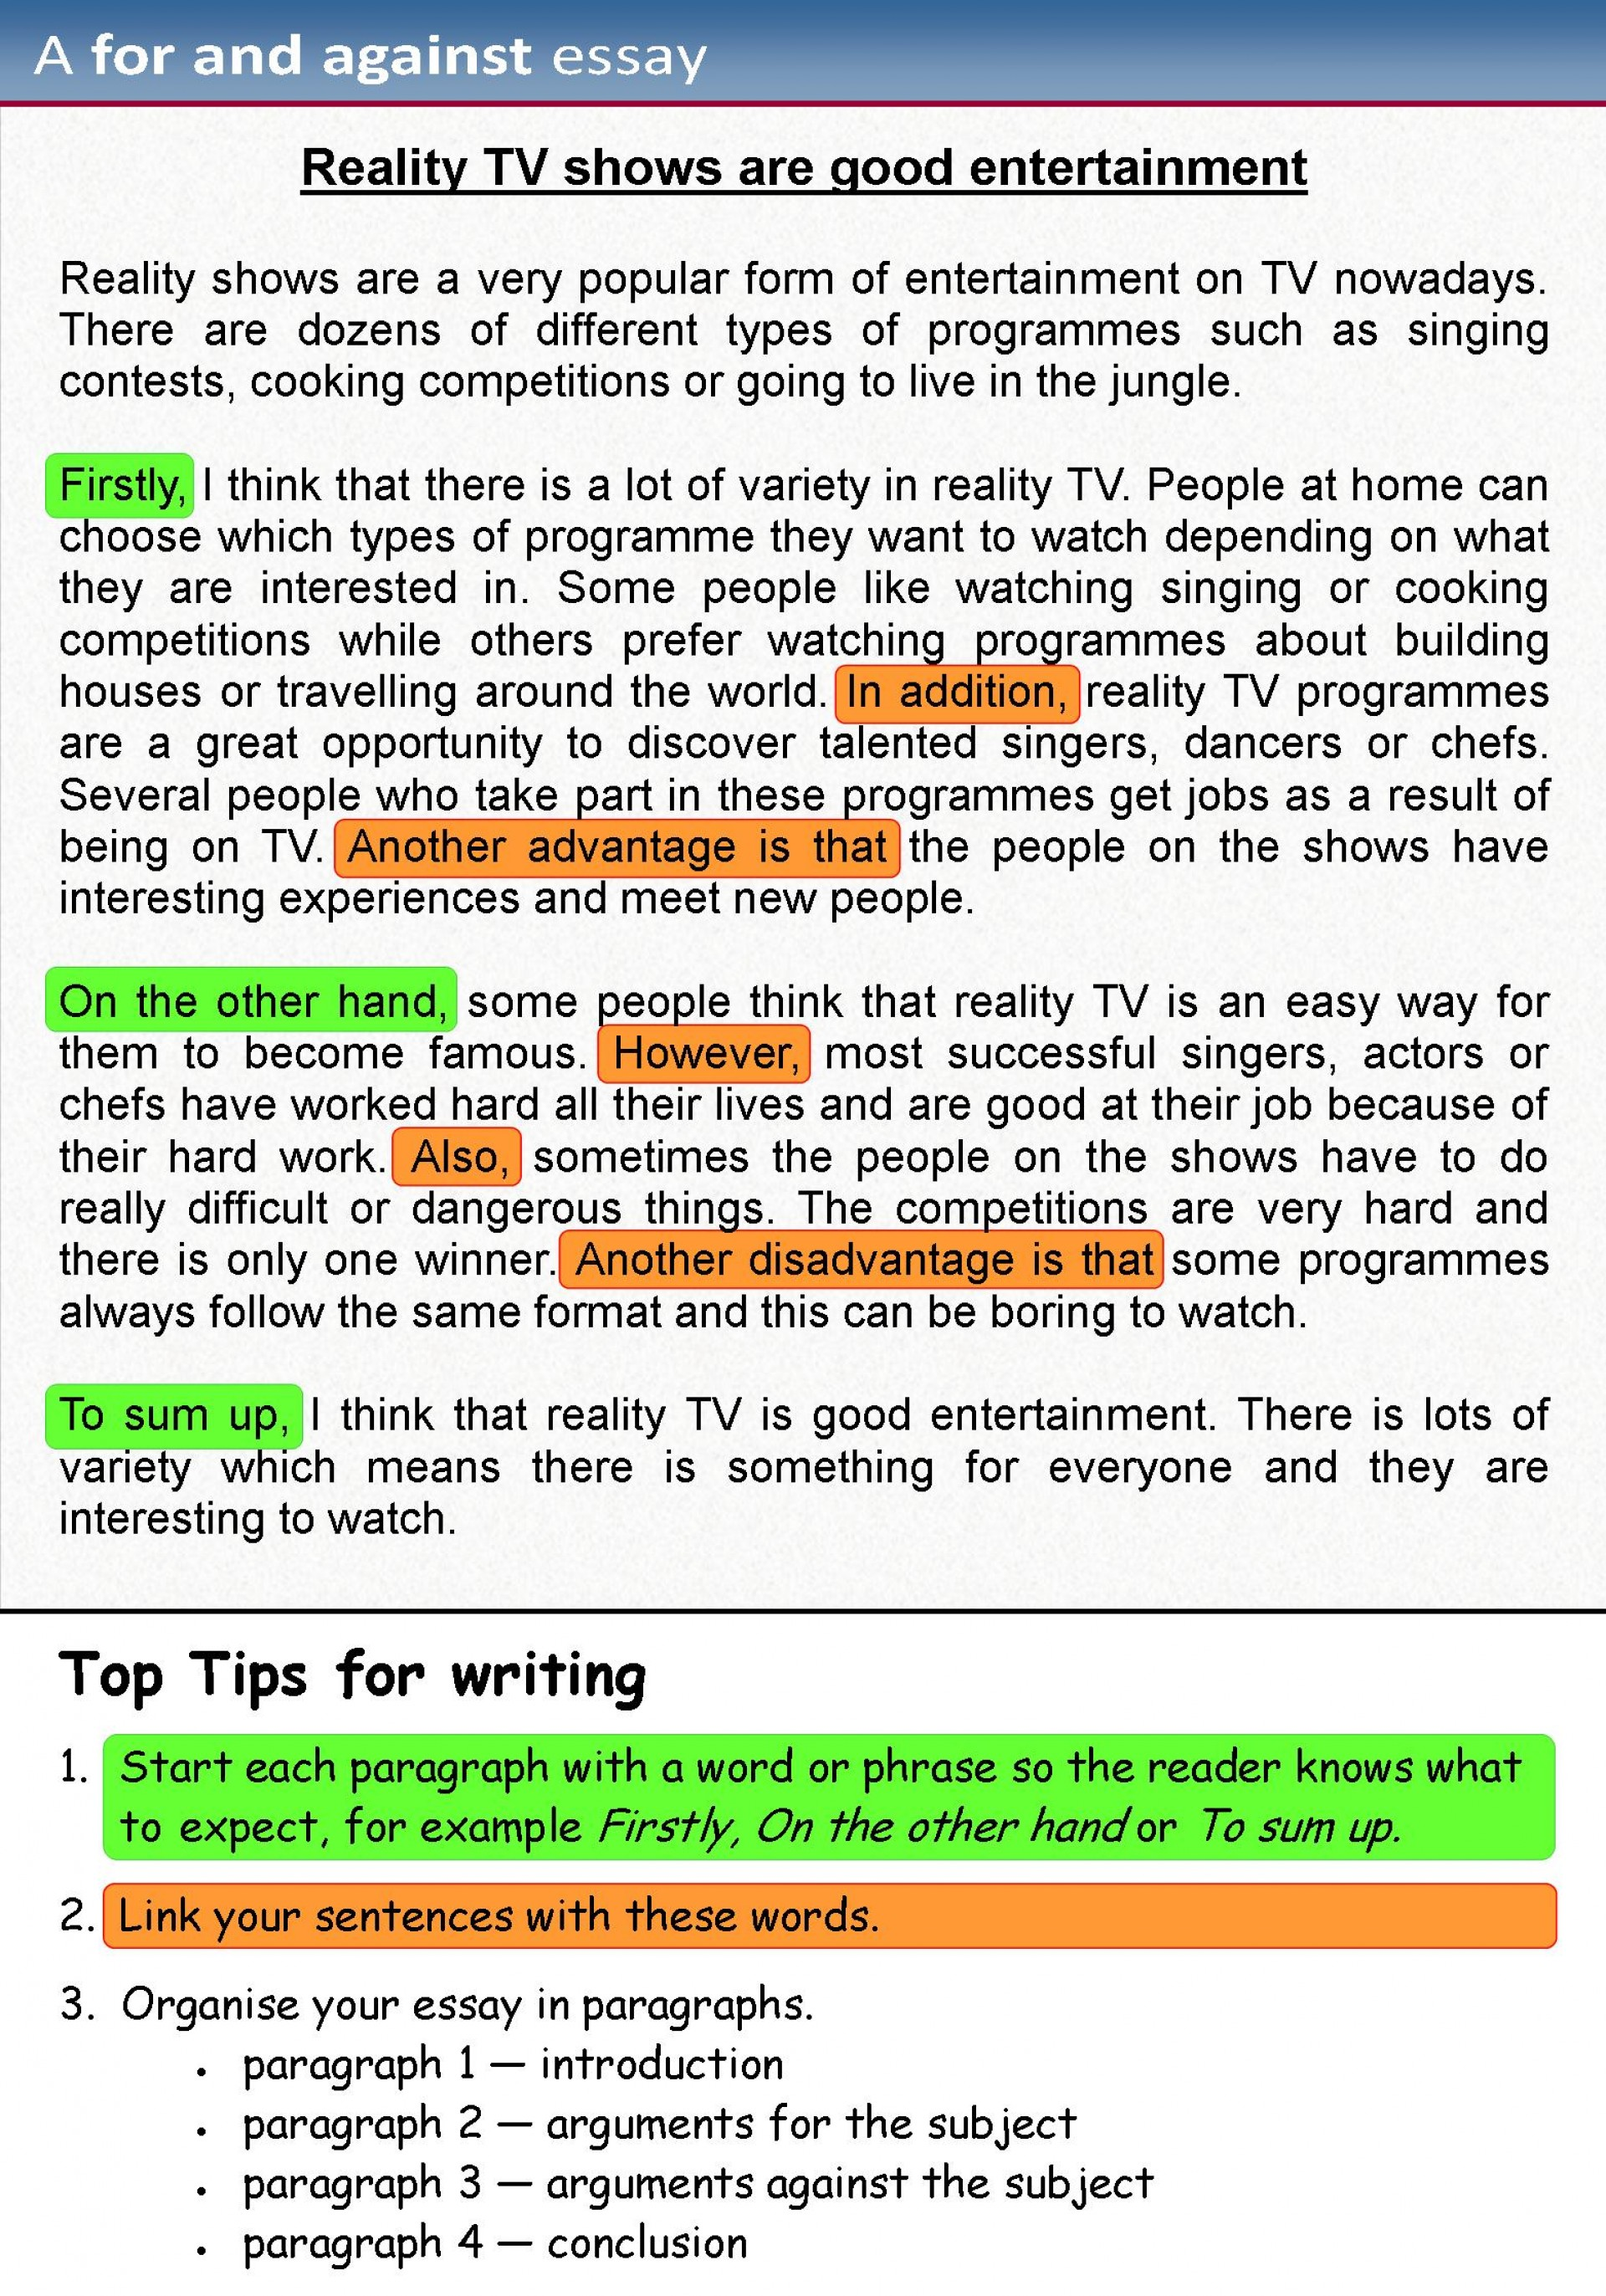 019 Essay Example For Against 1 Words To Start Fantastic An Argumentative Good Off Bombastic 1920